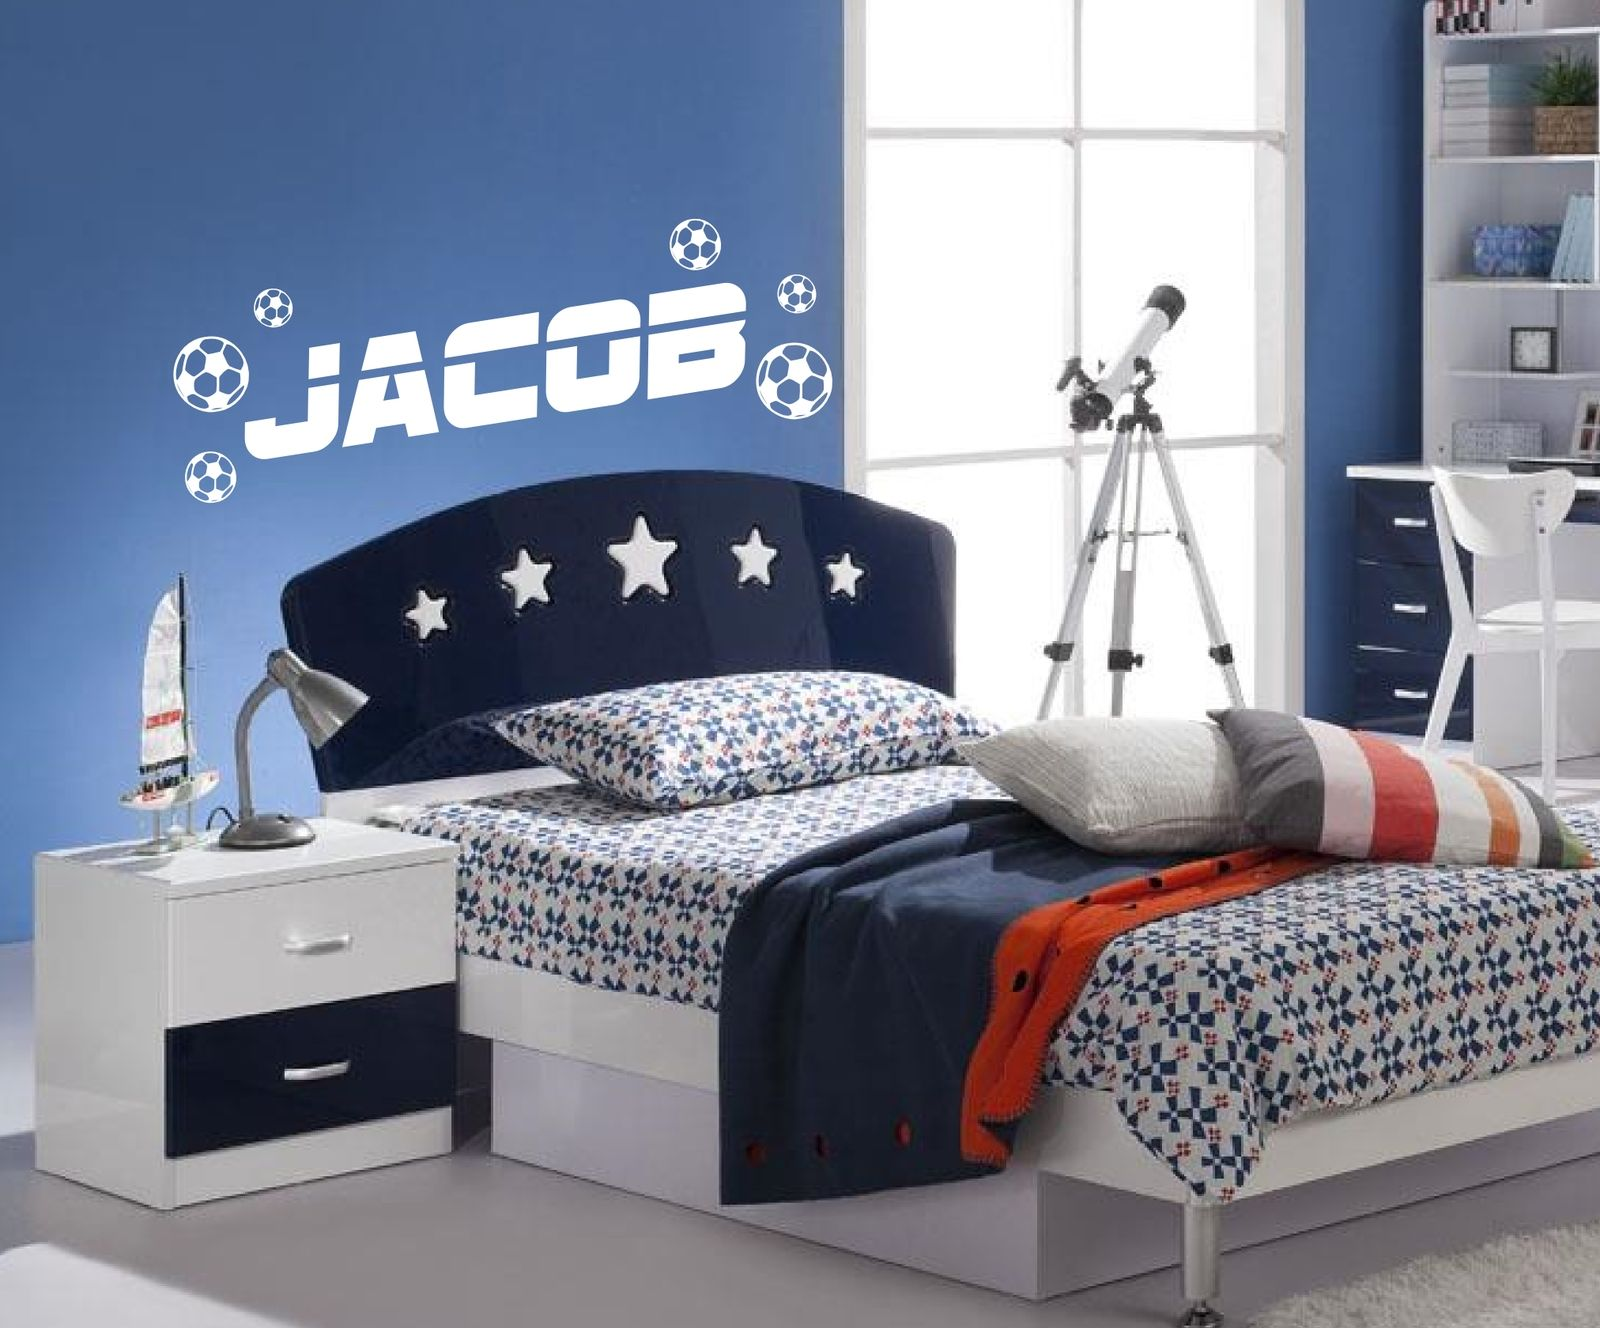 Boys Football Bedroom Home Design Ideas - Boys football bedroom ideas